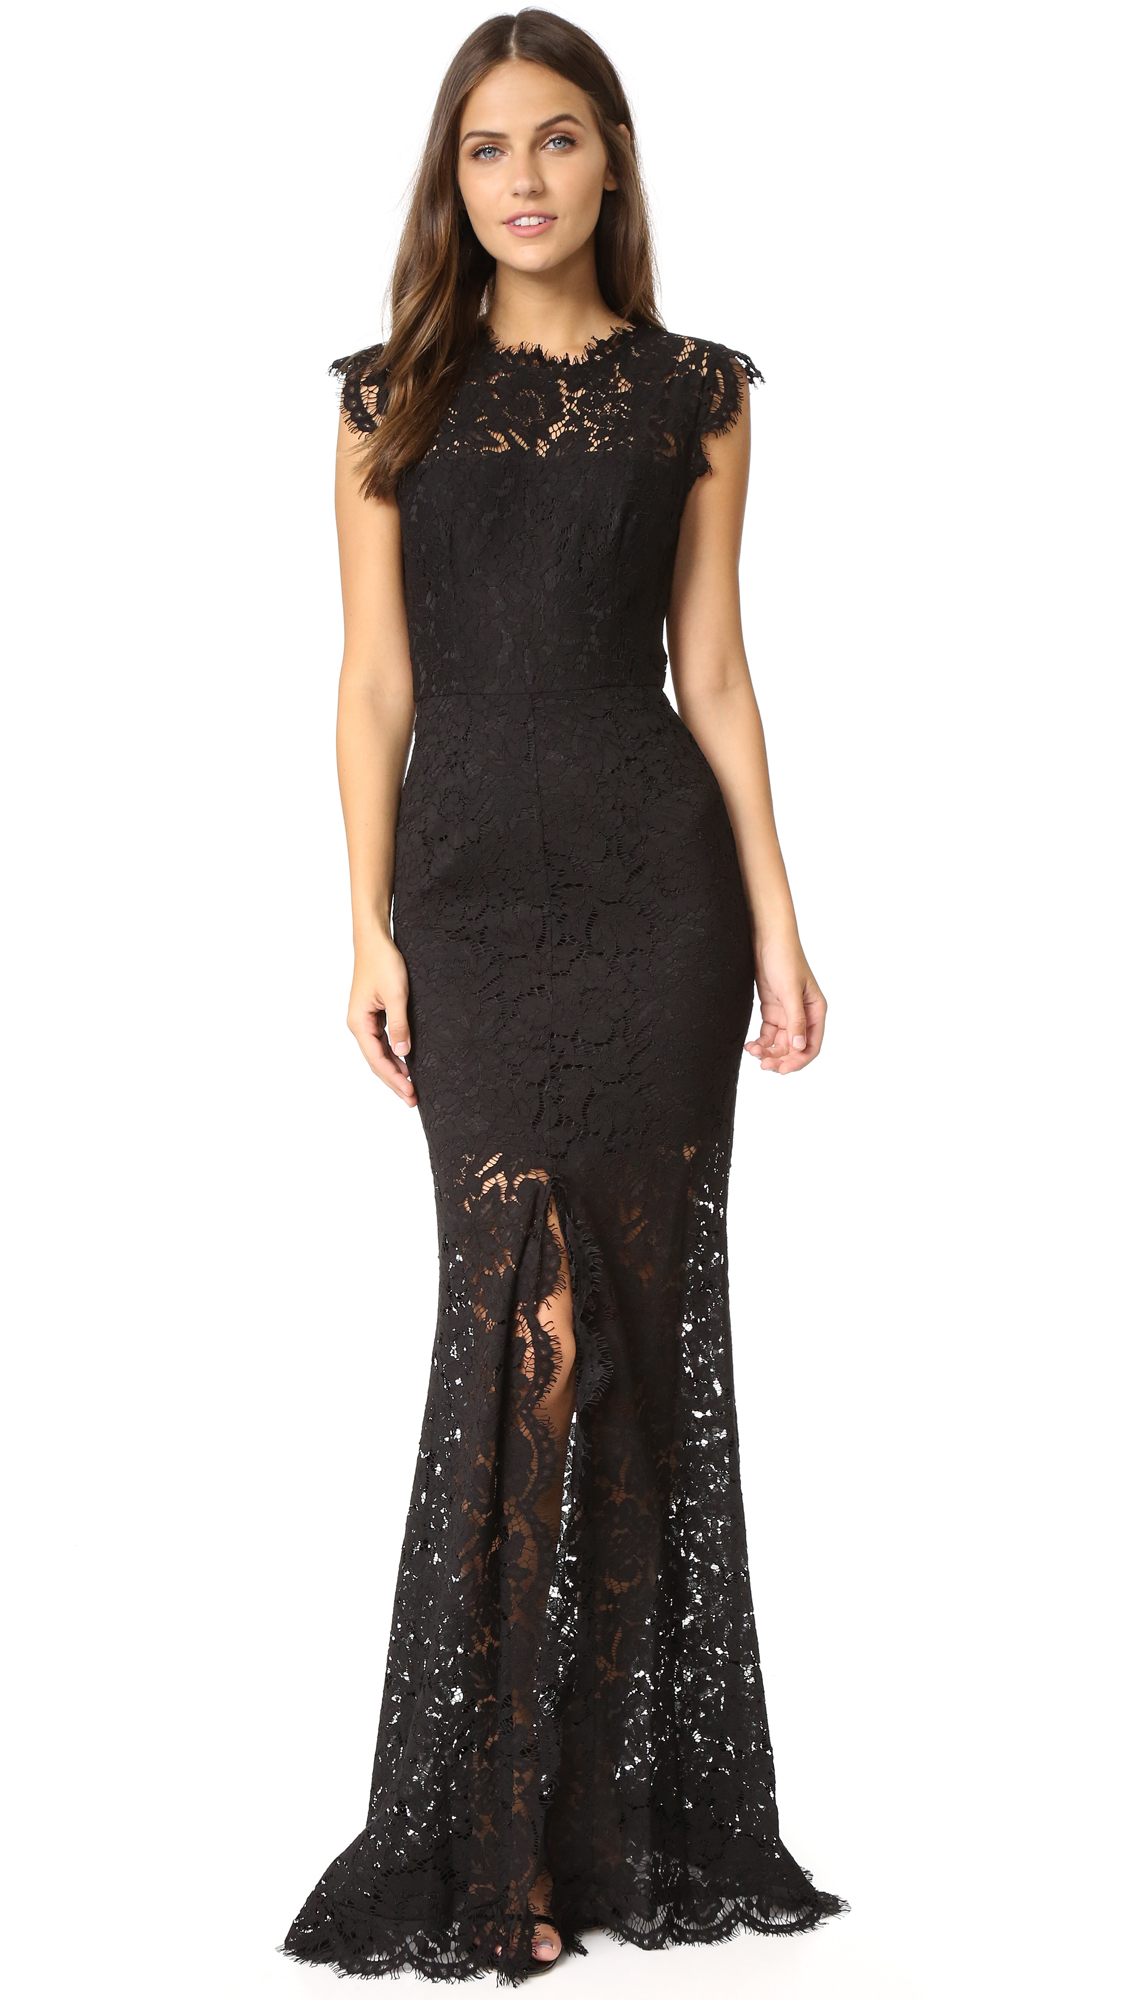 Rachel Zoe Estelle Cutout Maxi Dress - Black